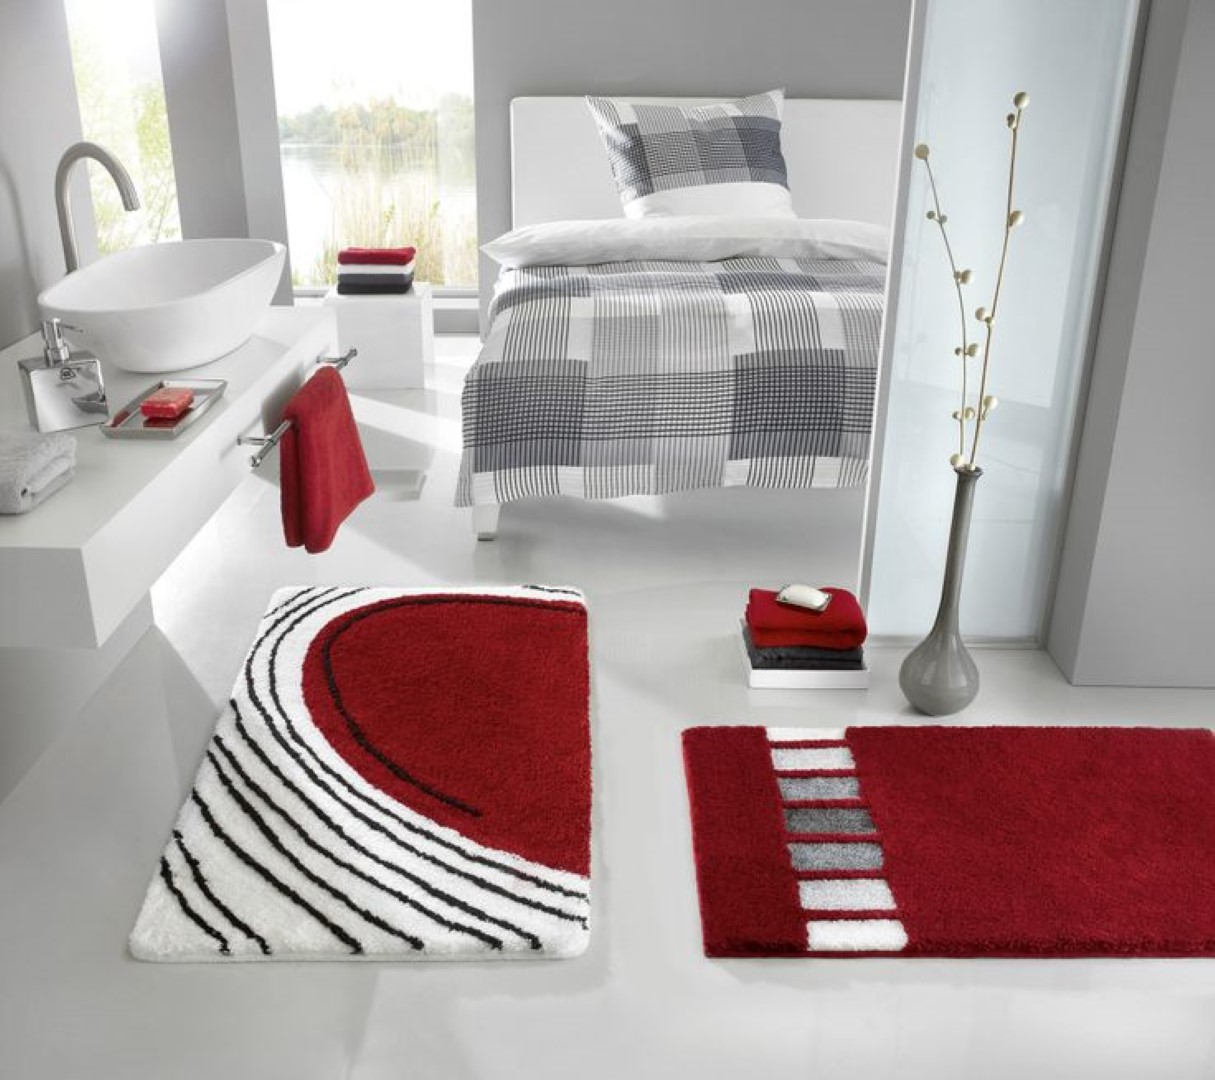 Contemporary Rug For Luxurious Bathroom Look